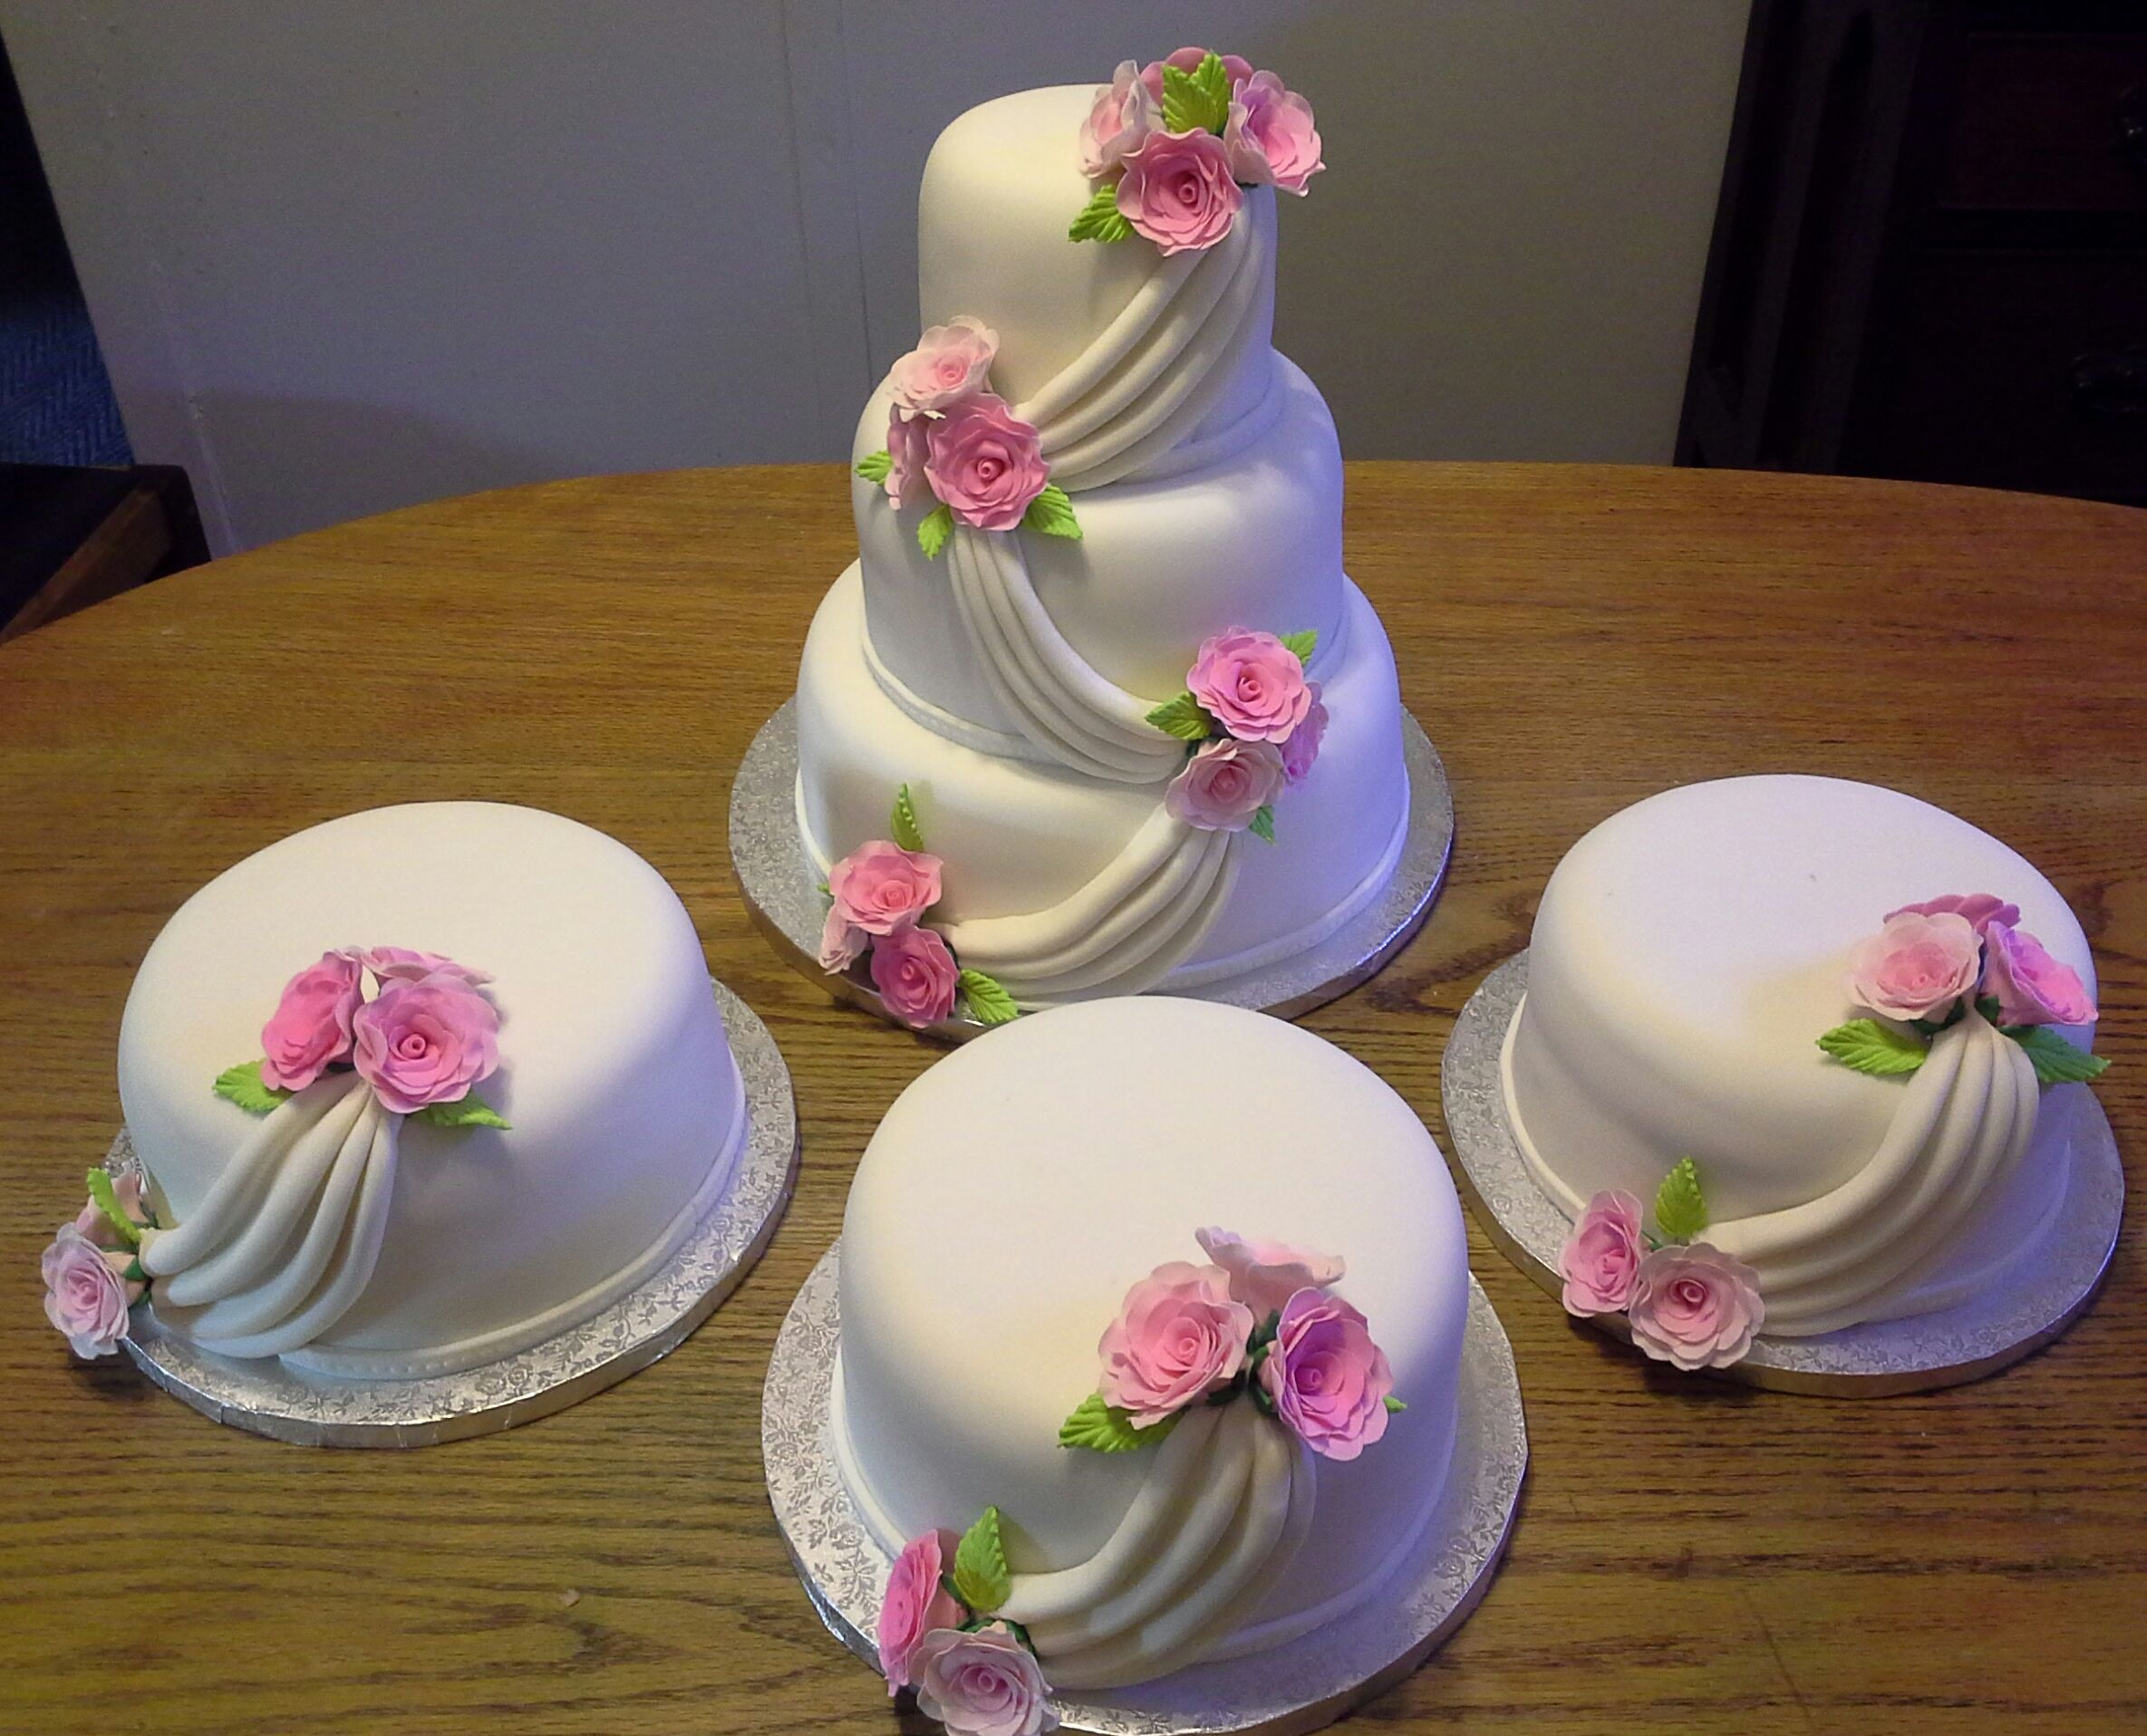 Wedding cake with 3 side cakes.